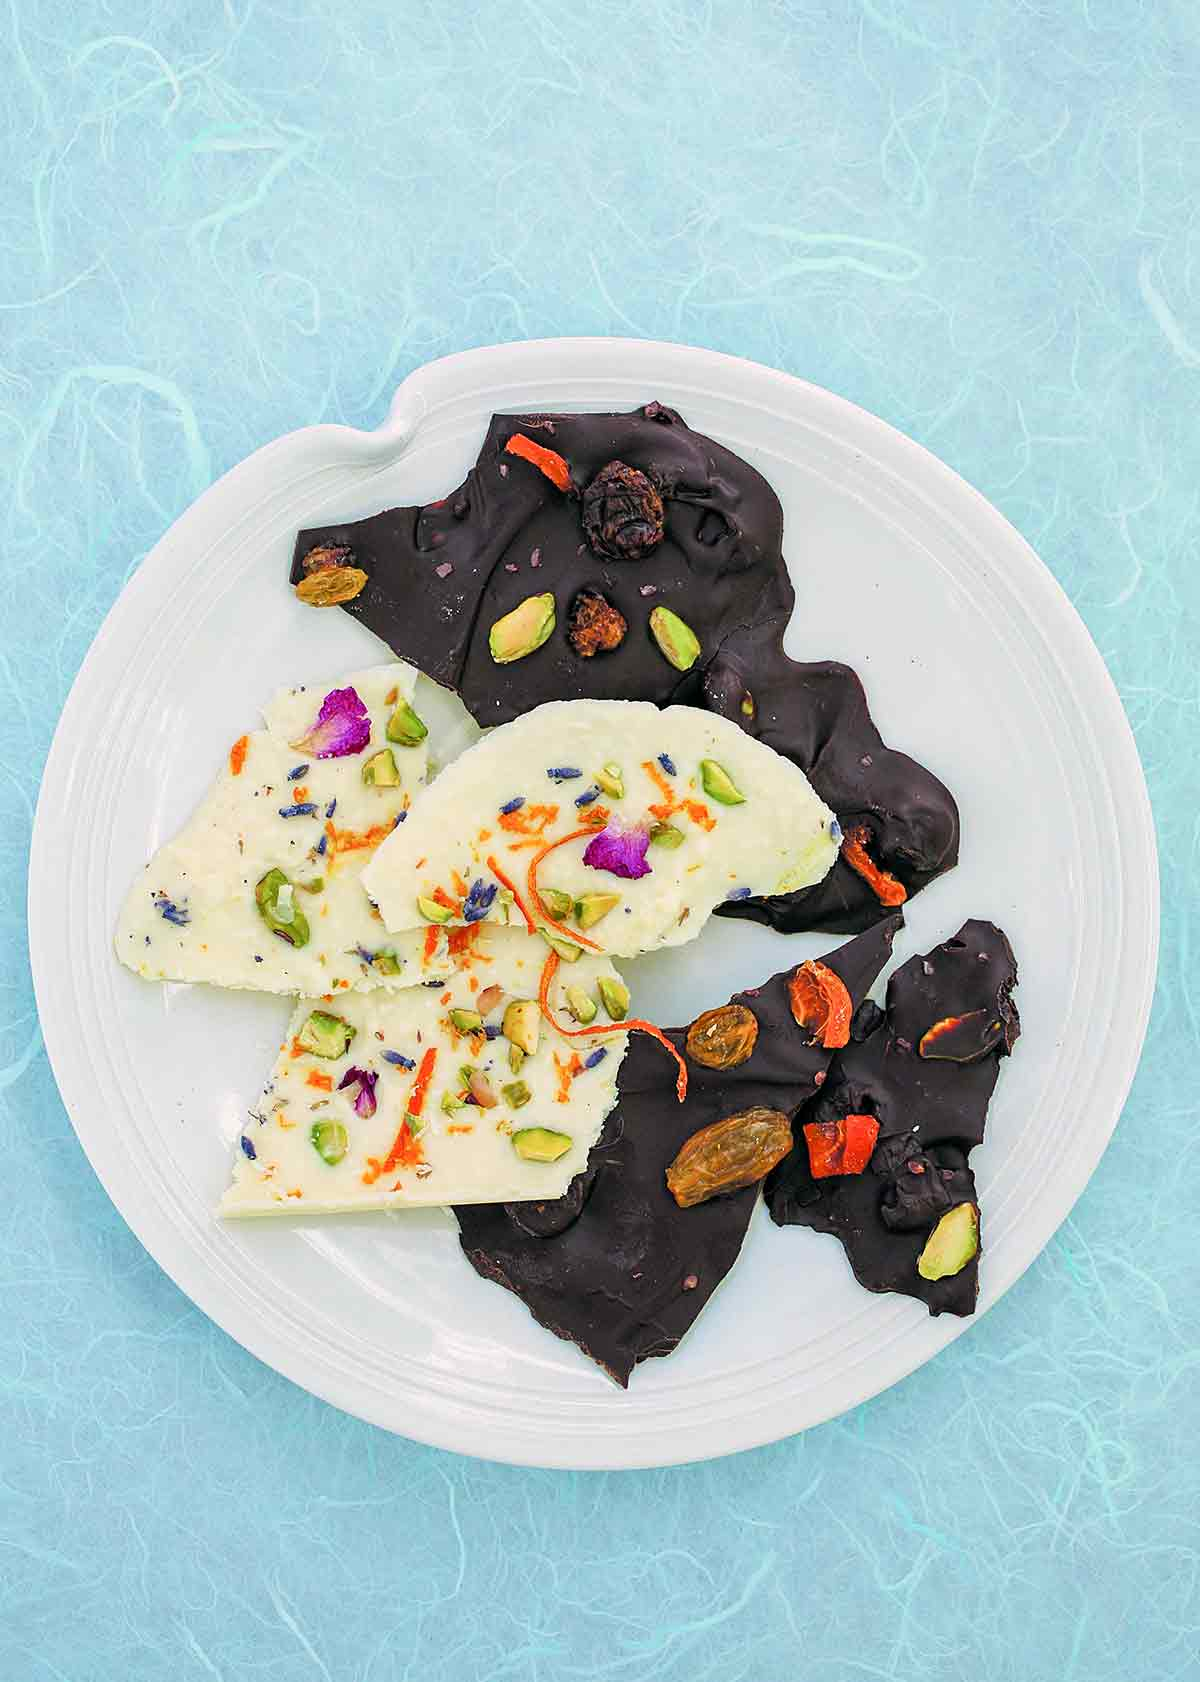 Several pieces of chocolate bark with apricots and pistachios on a white plate with a blue background.